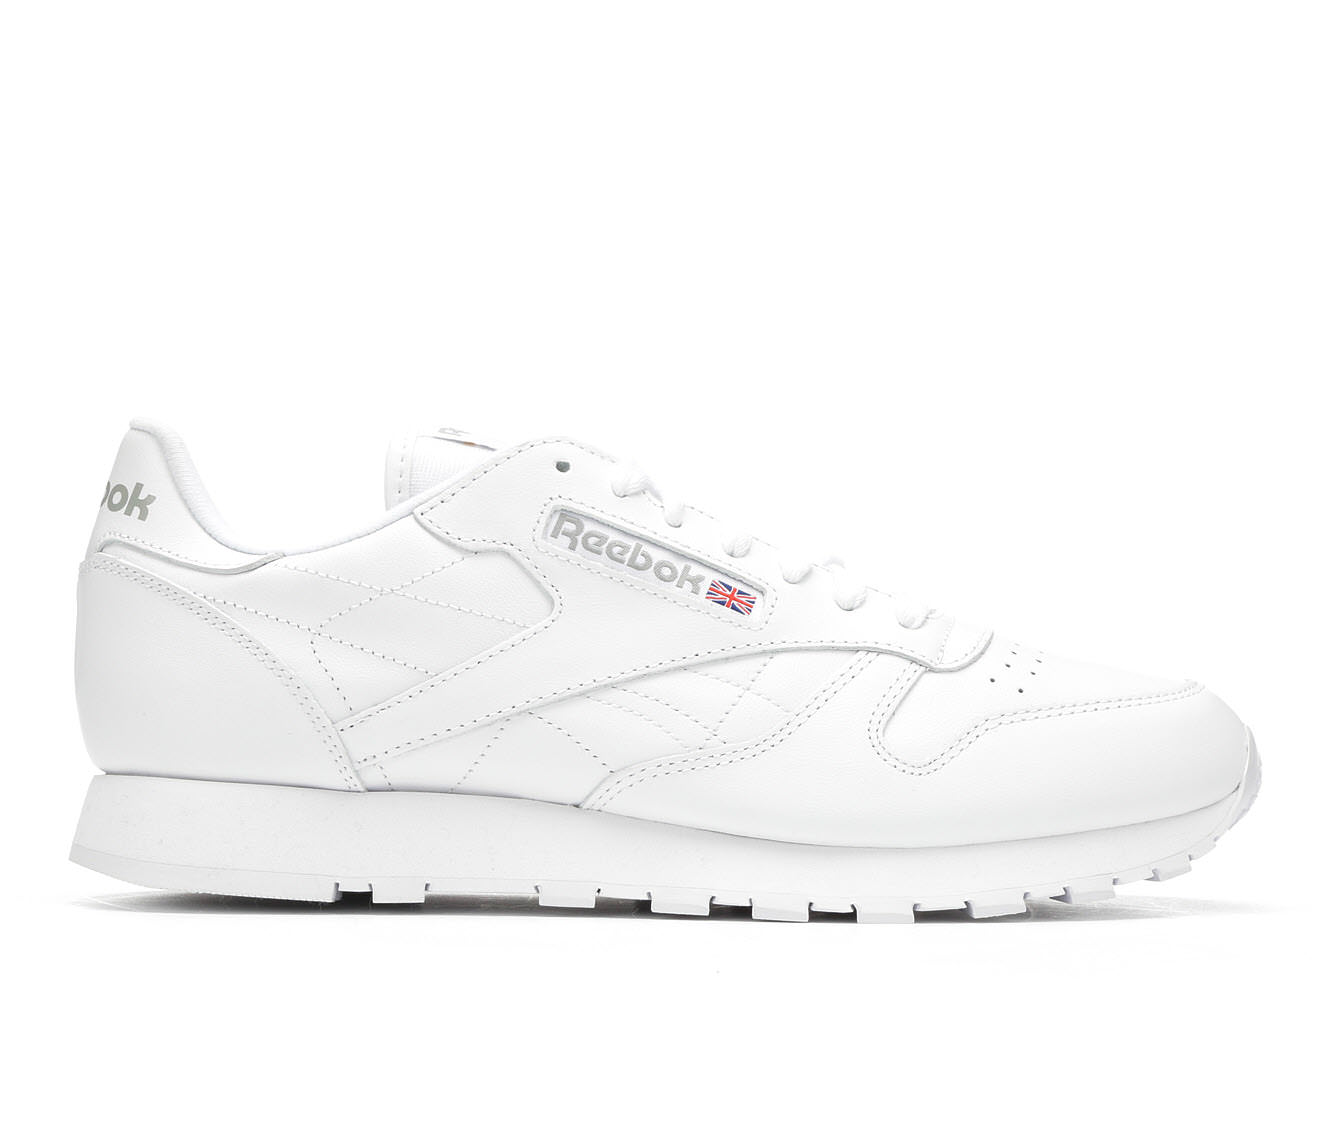 Men's Reebok Classic Leather Sneakers (White - Size 10.5) 1722854